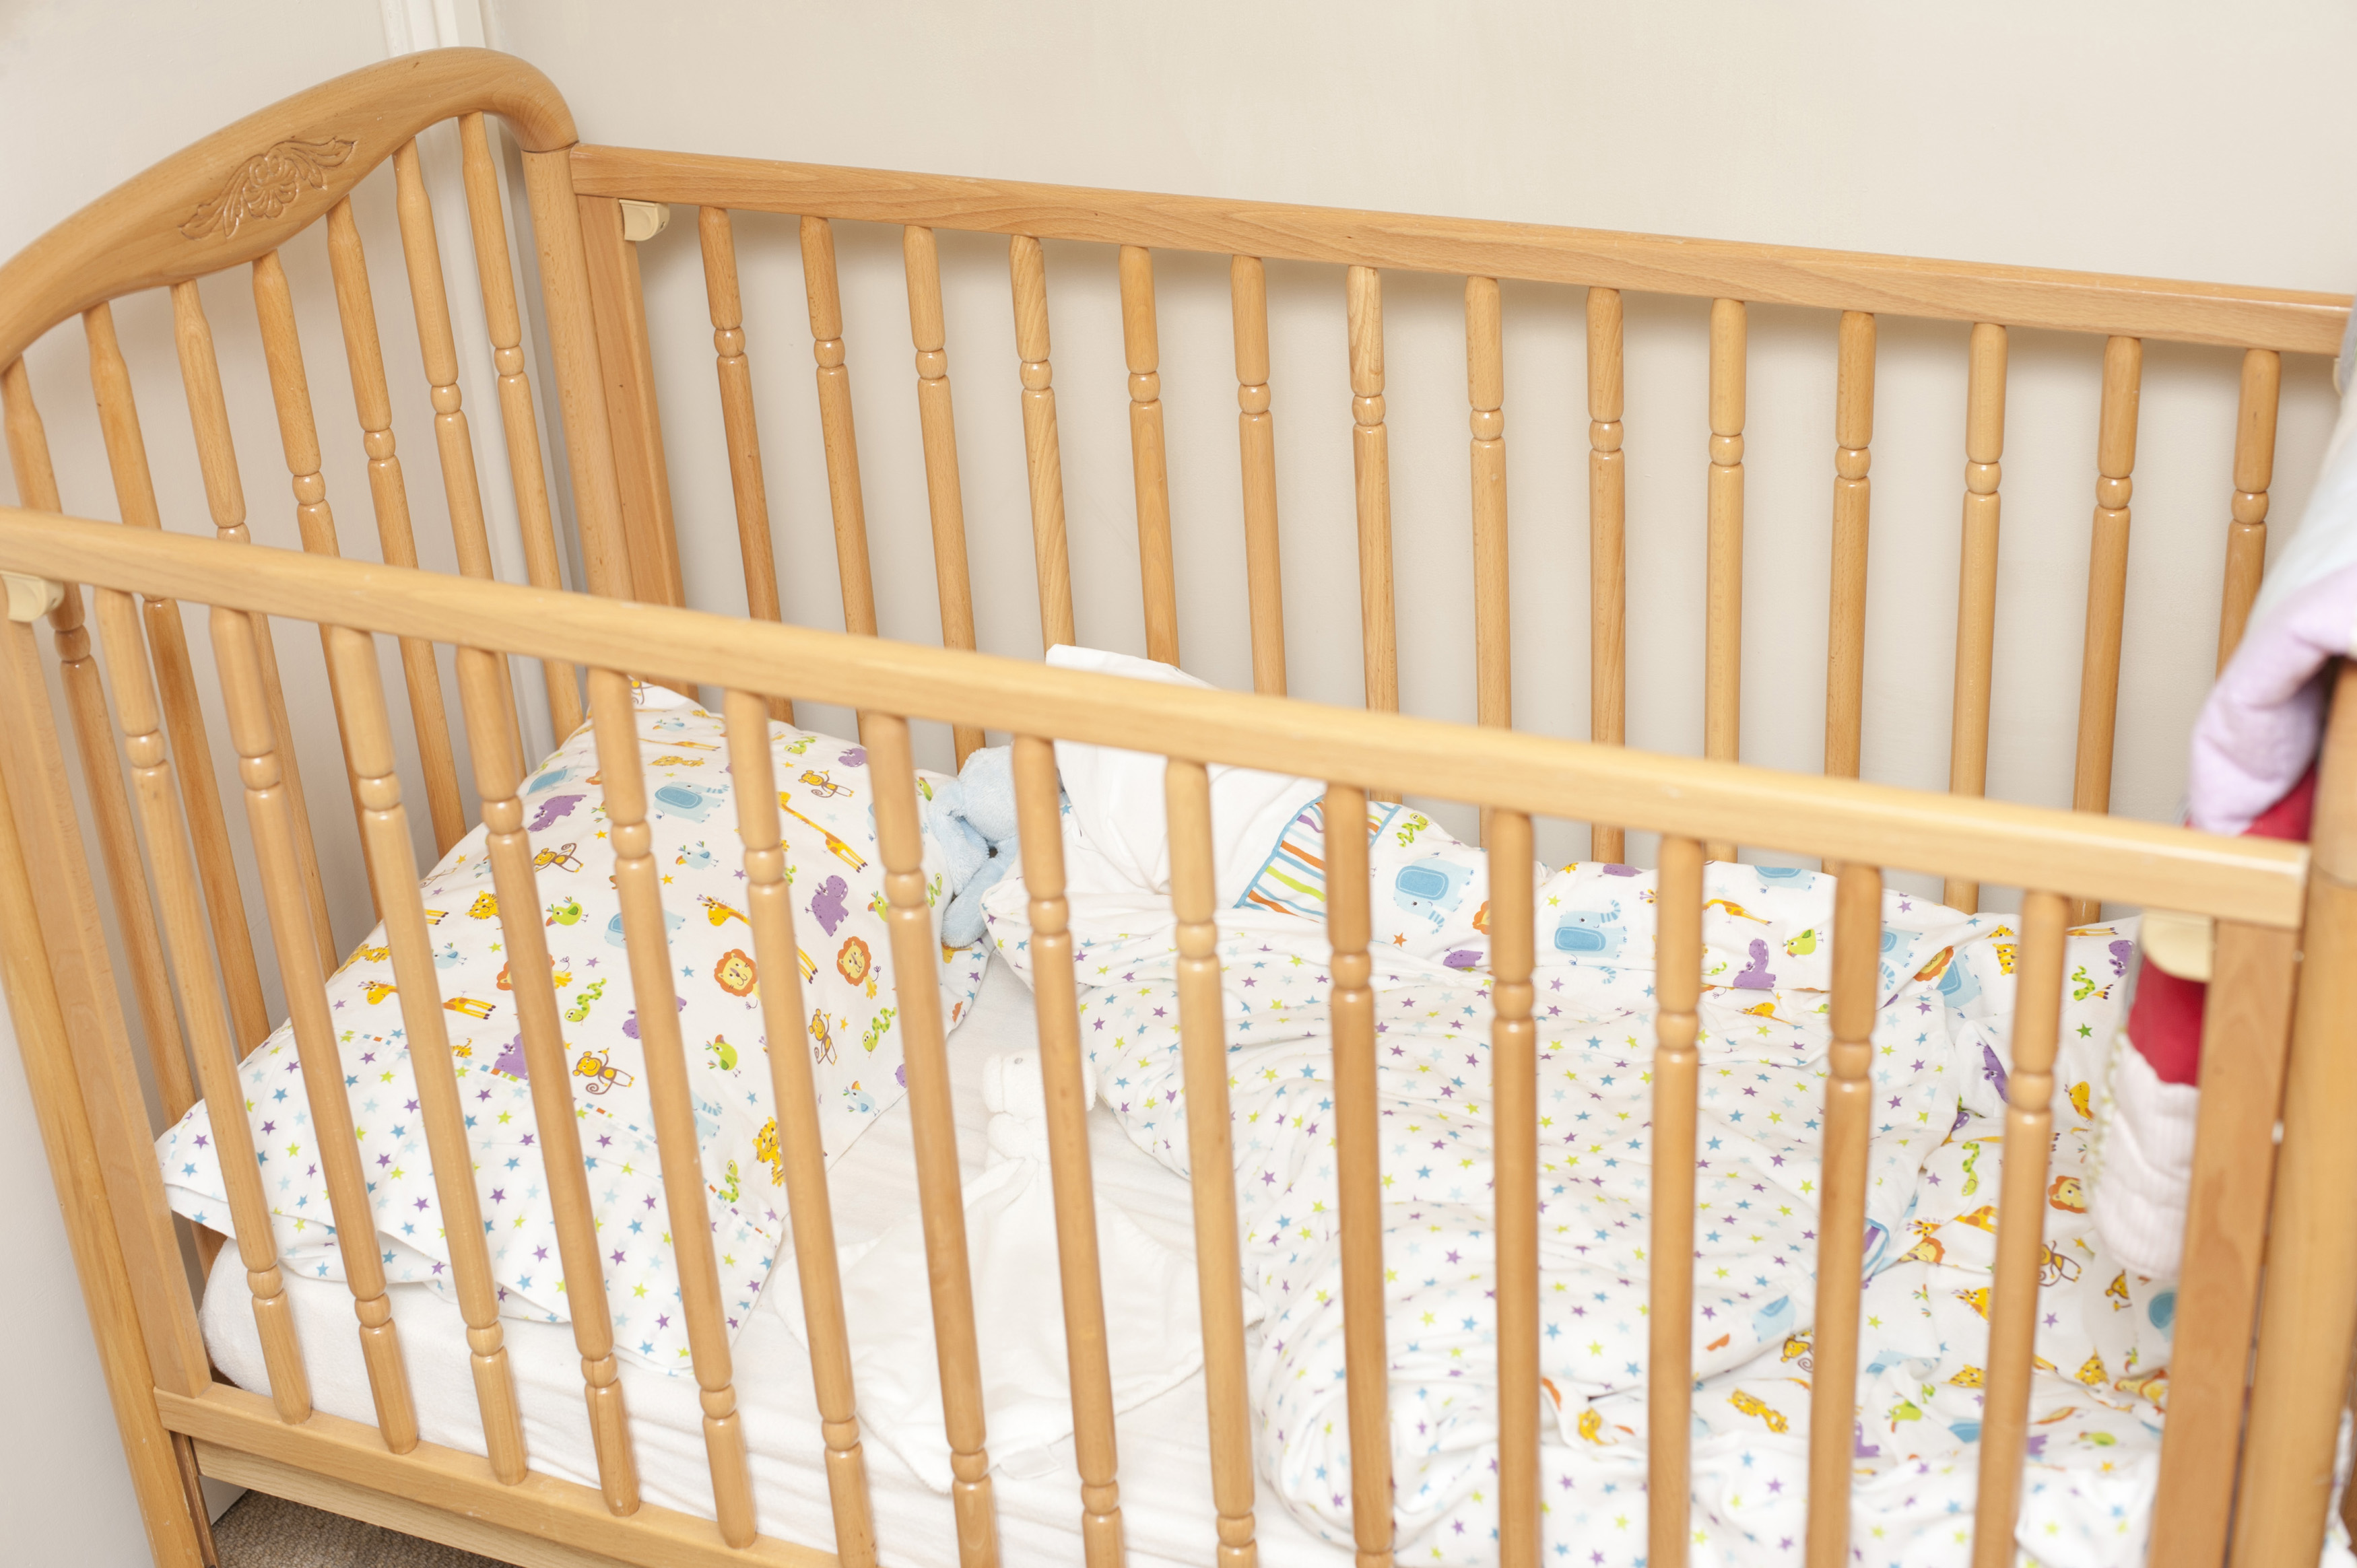 ... Empty Pine Colored Wooden Baby Crib With Folded Over Blanket In Corner .